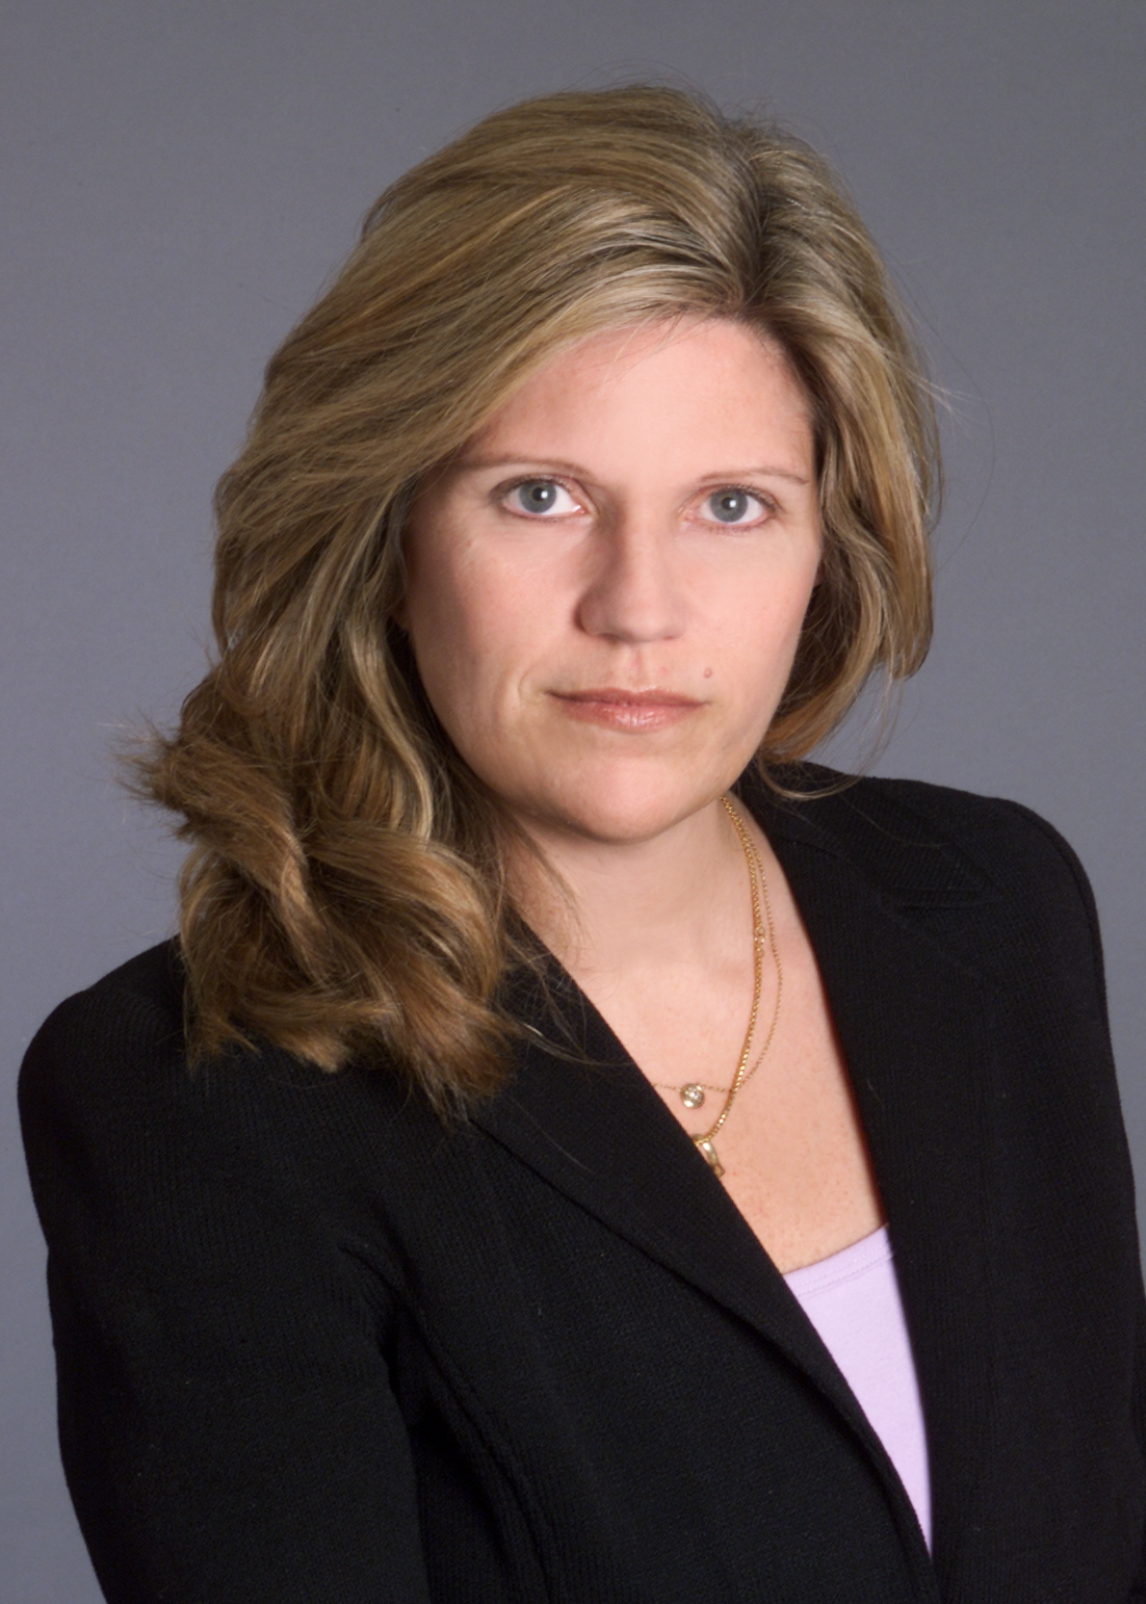 Sarah Smith, controller and chief accounting officer of Goldman Sachs